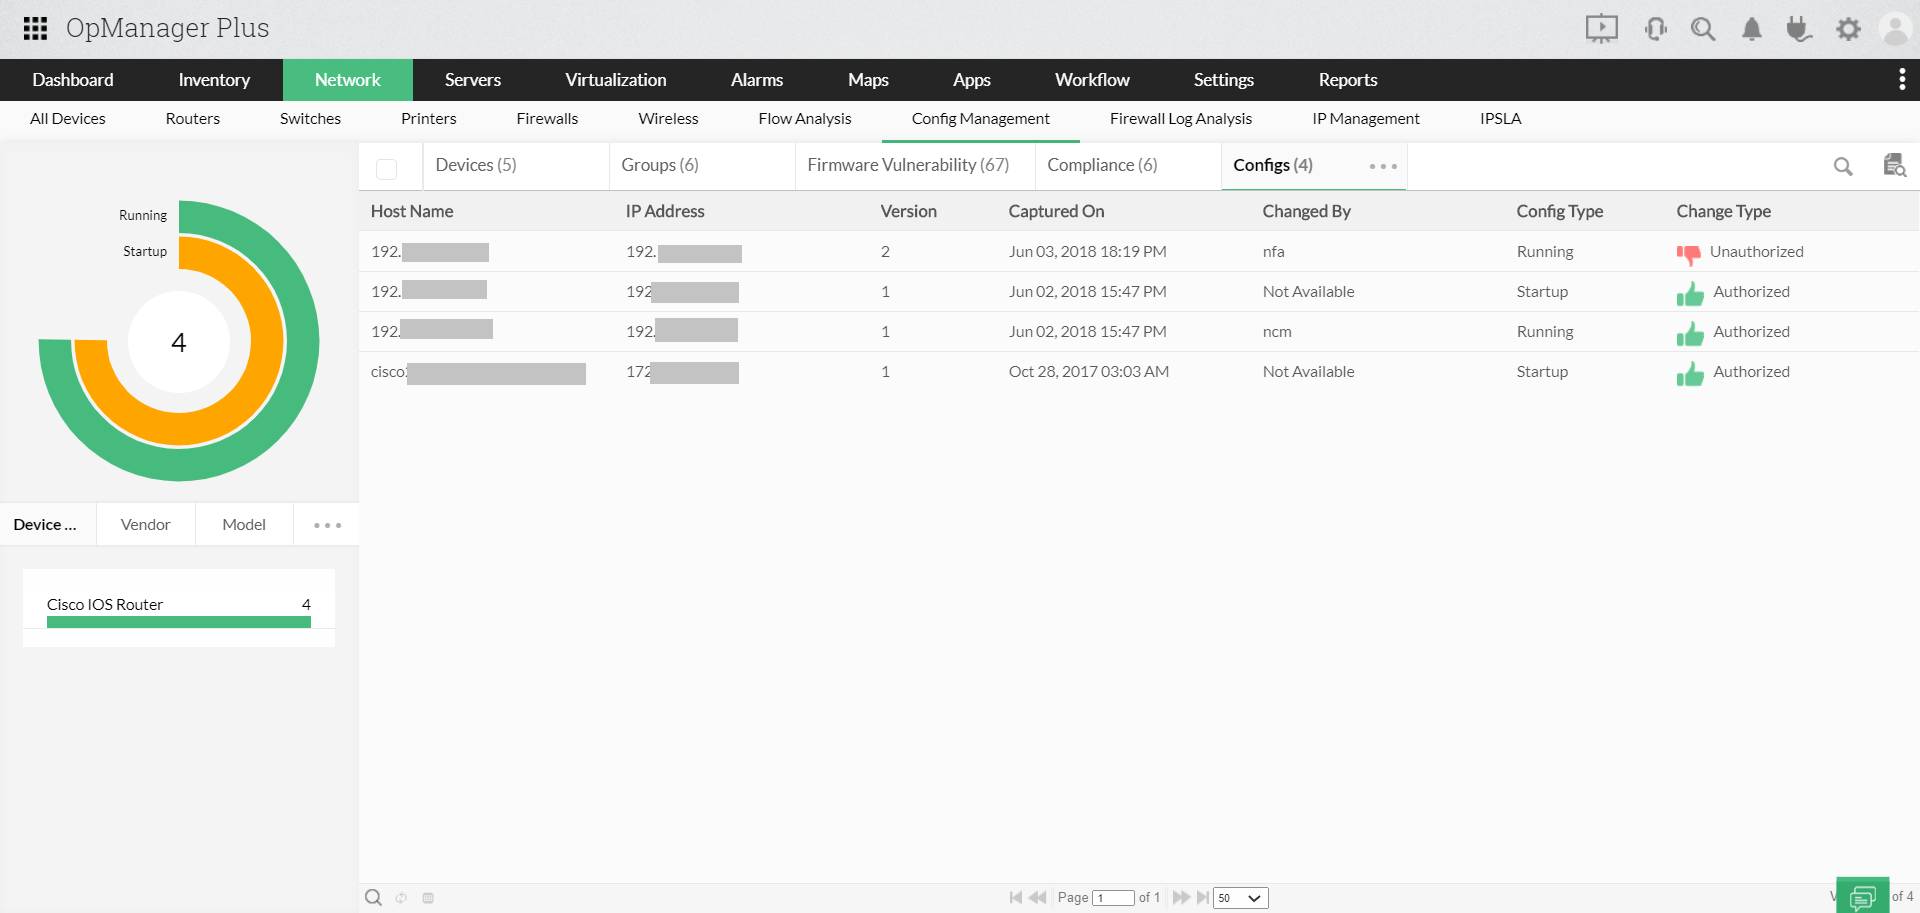 Unified IT Monitoring - ManageEngine OpManager Plus